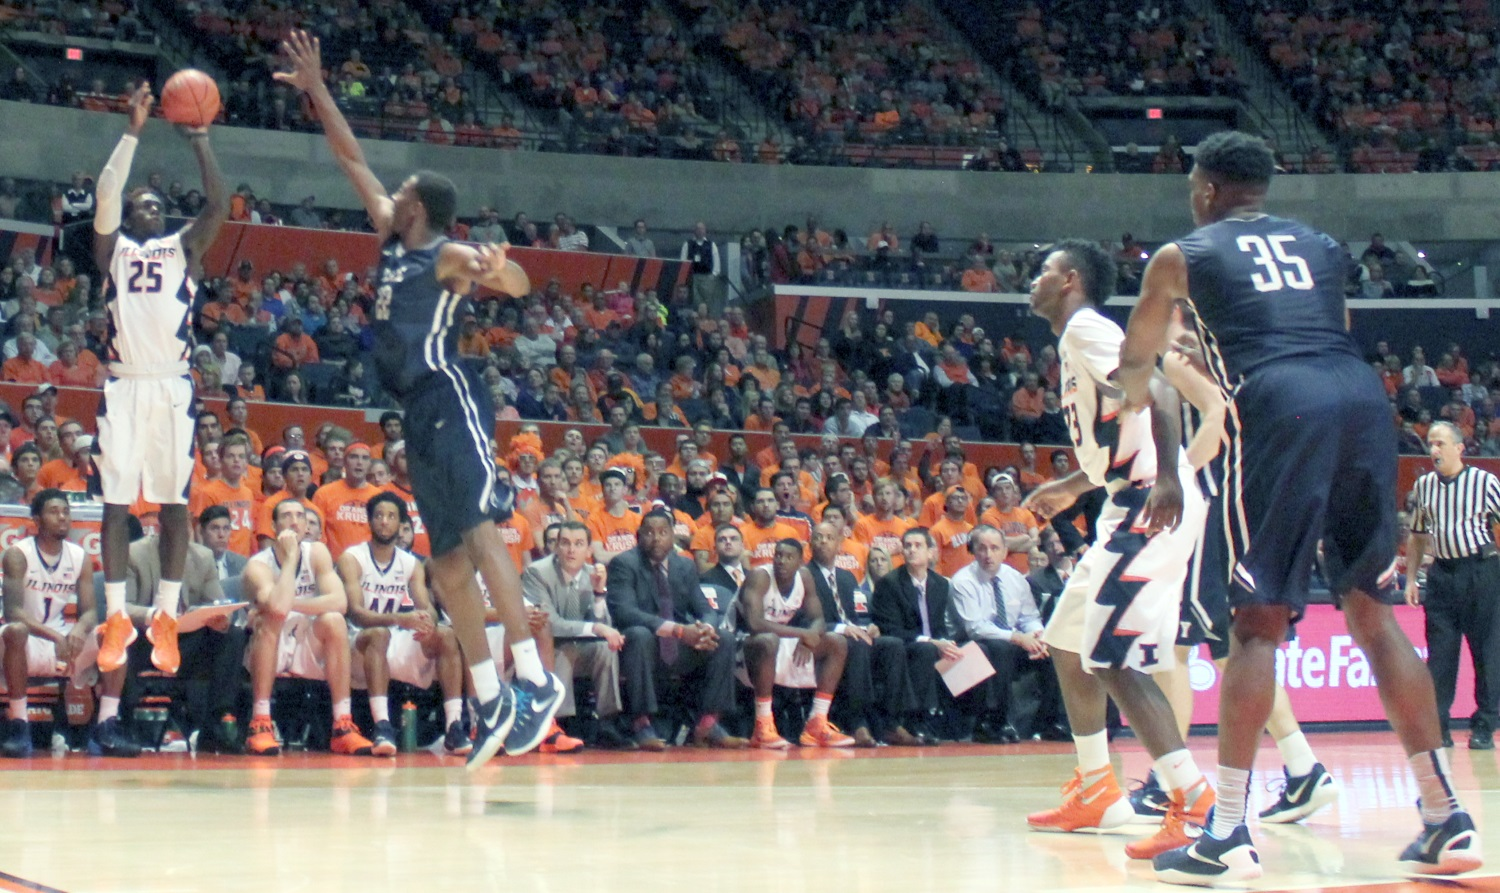 Kendrick Nunn connects for three points versus Yale on Wednesday at the State Farm Center